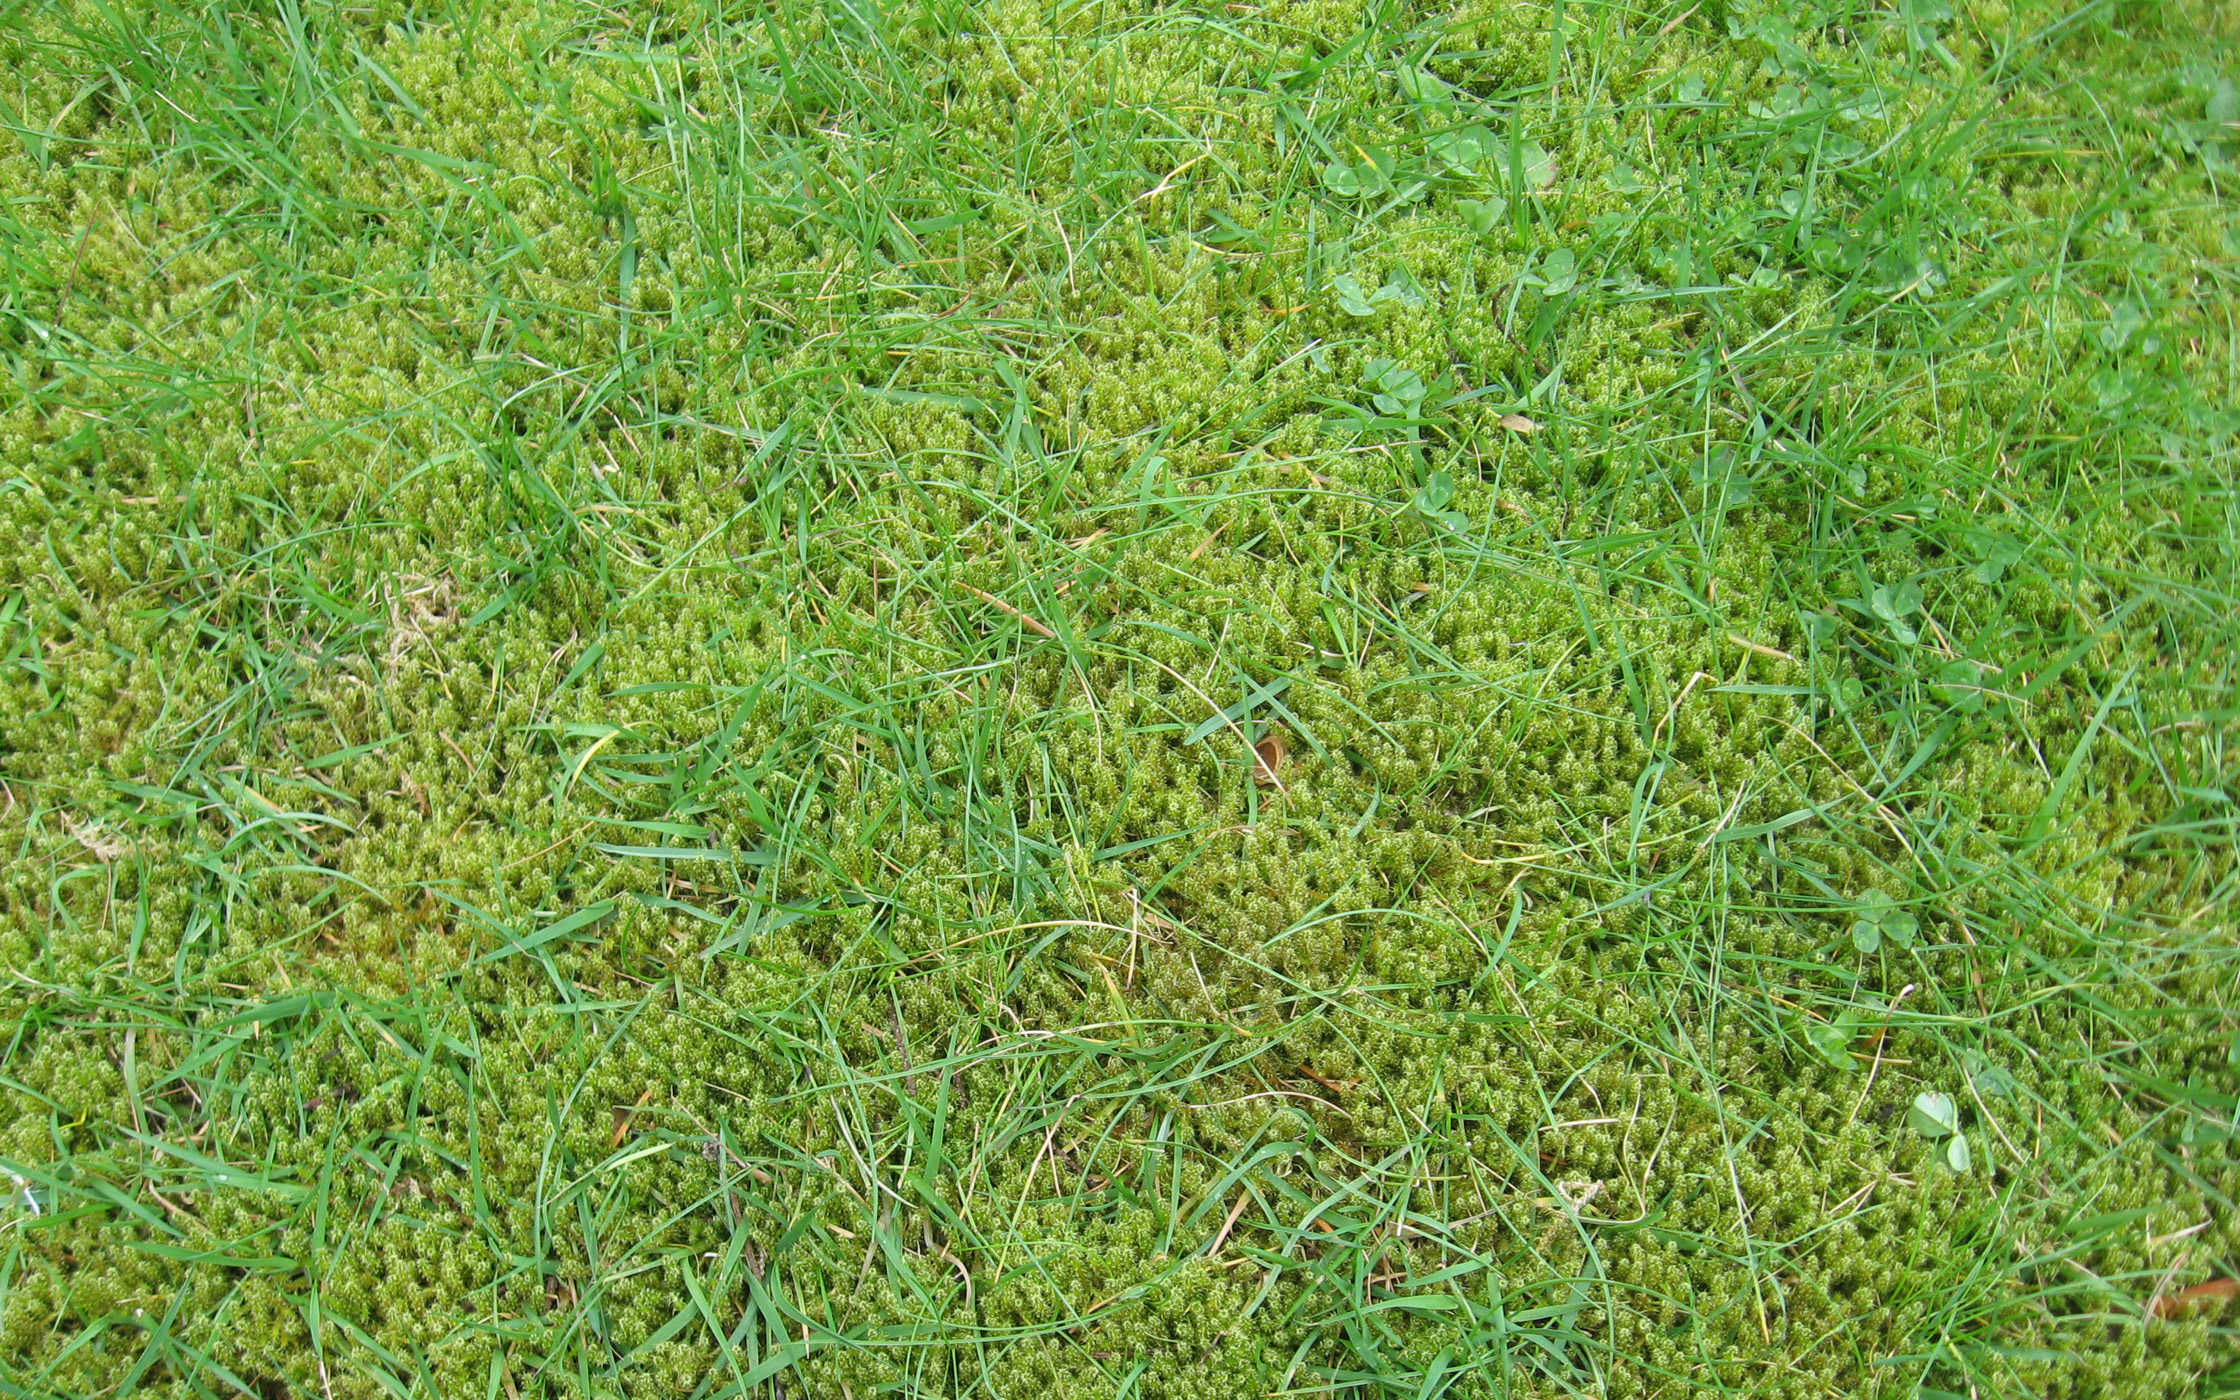 Unlike grass, moss can thrive in acidic soil conditions.